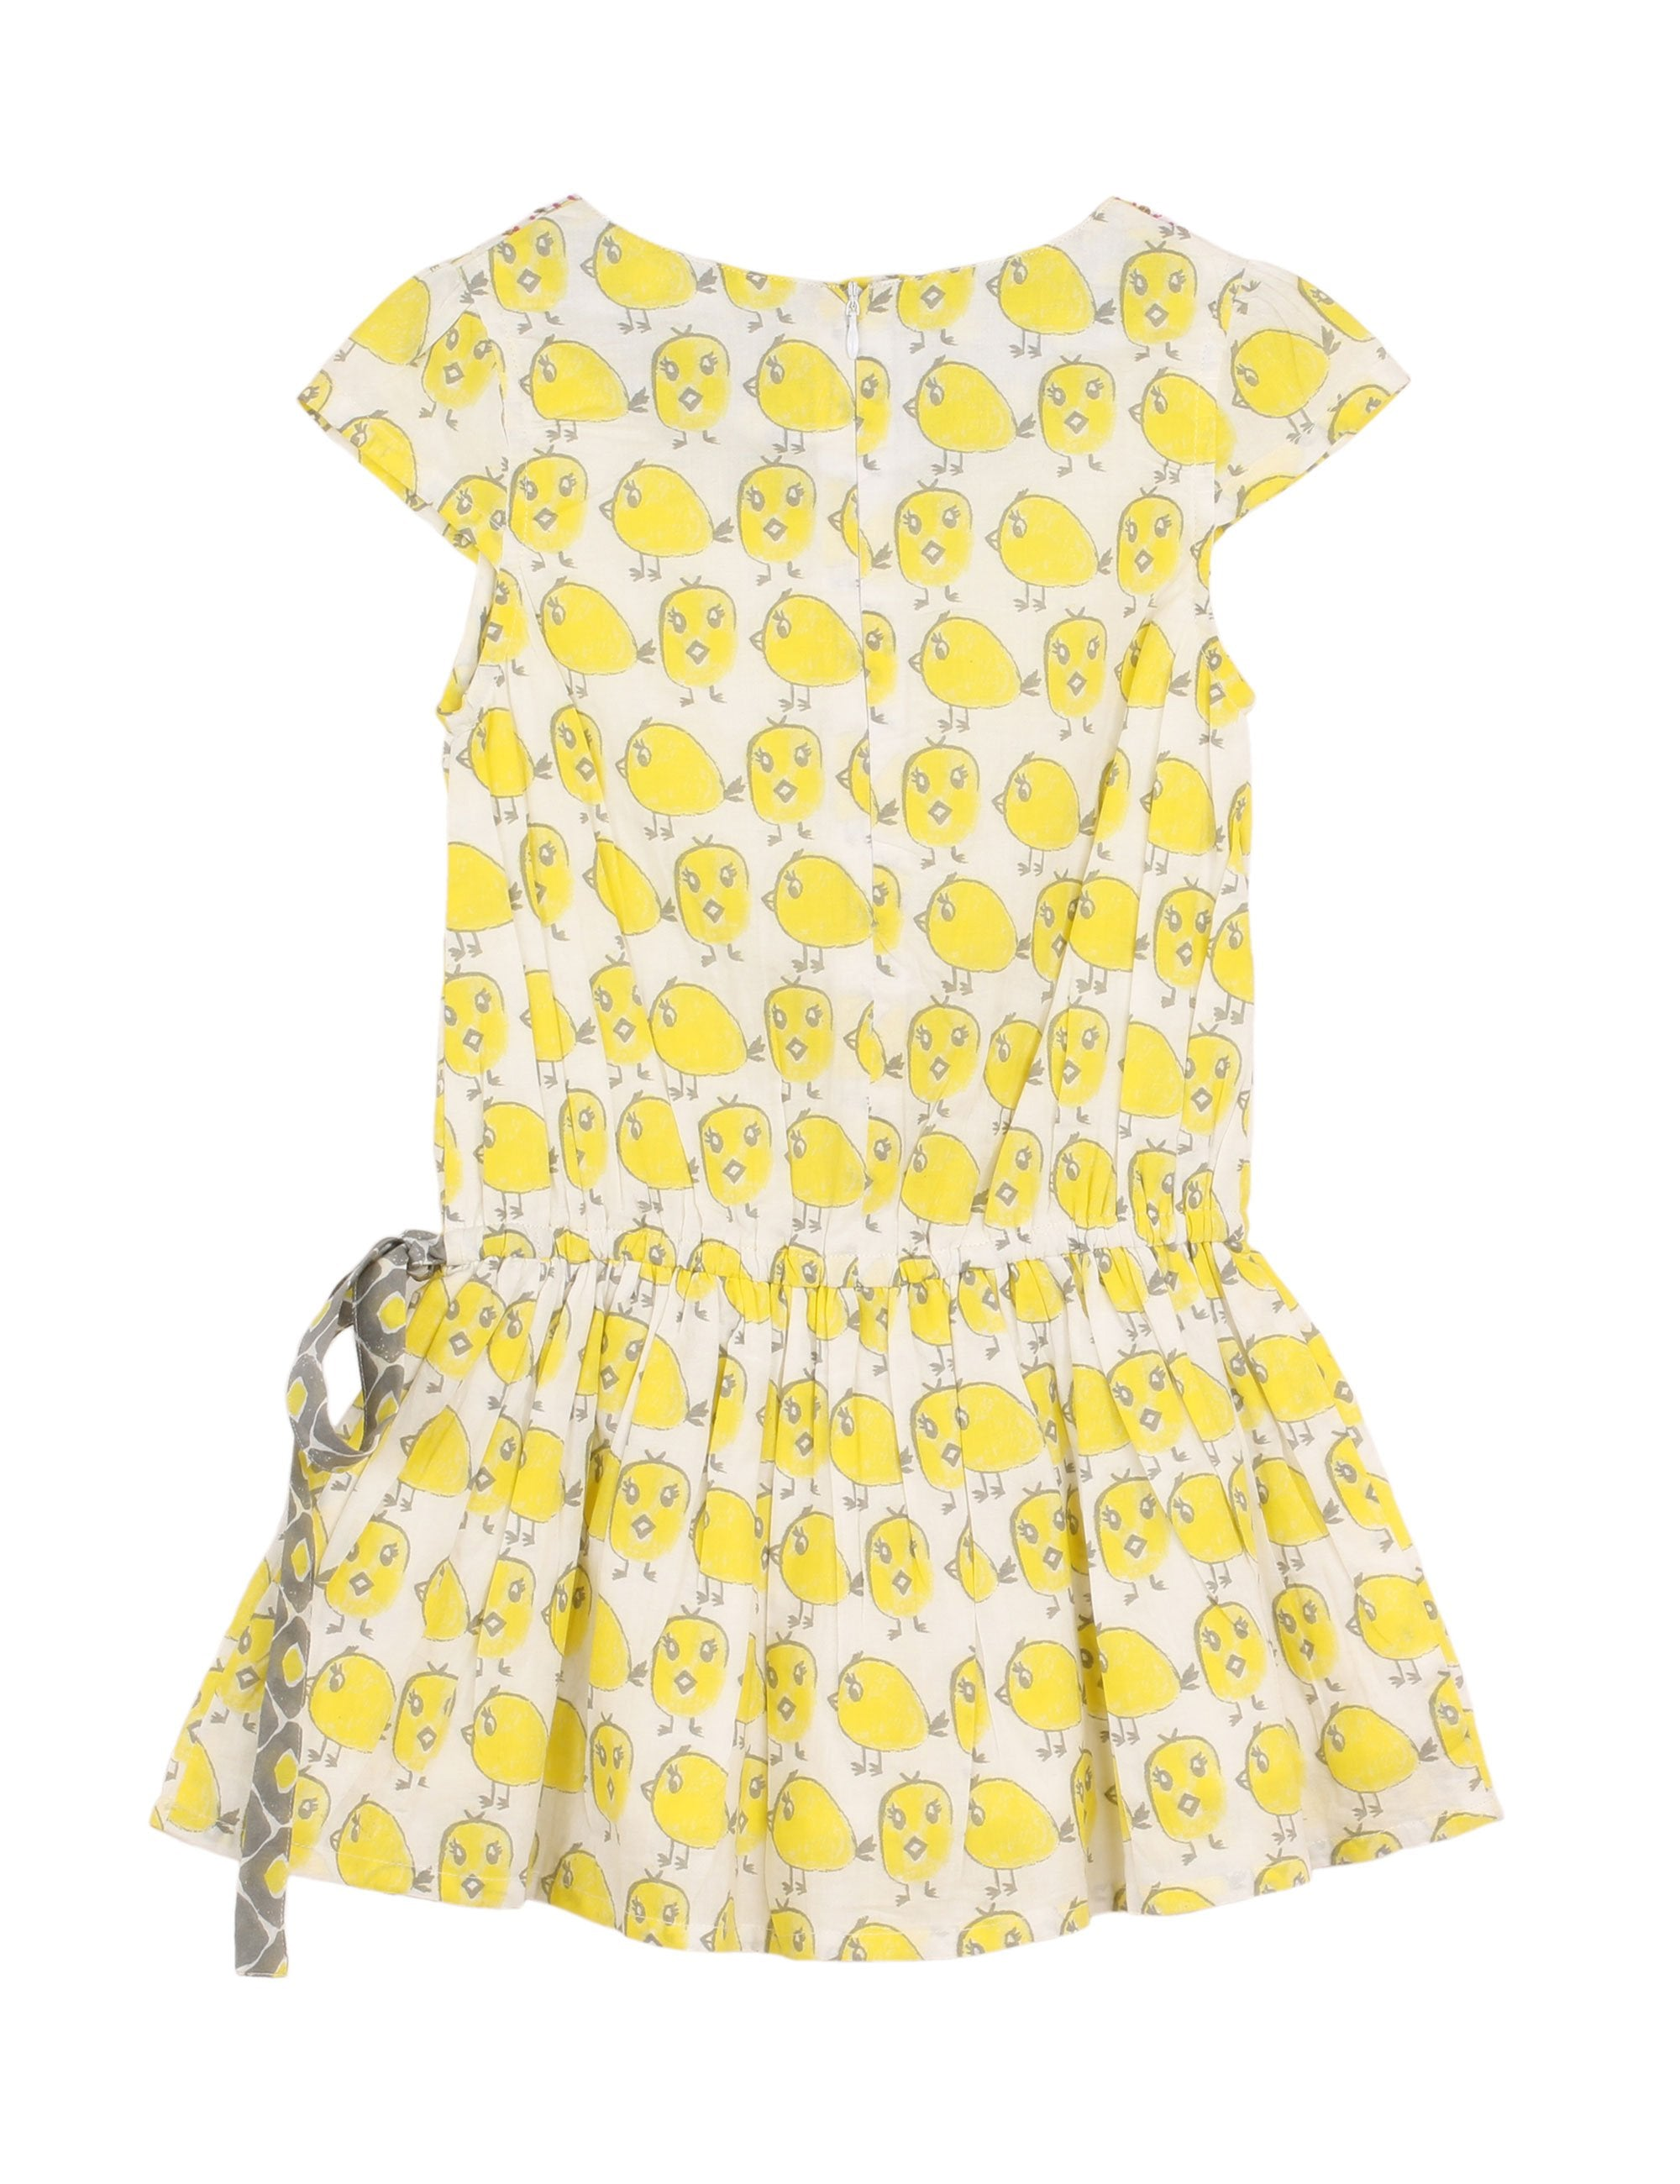 Chick Print Tunic Dress in Yellow for Girls